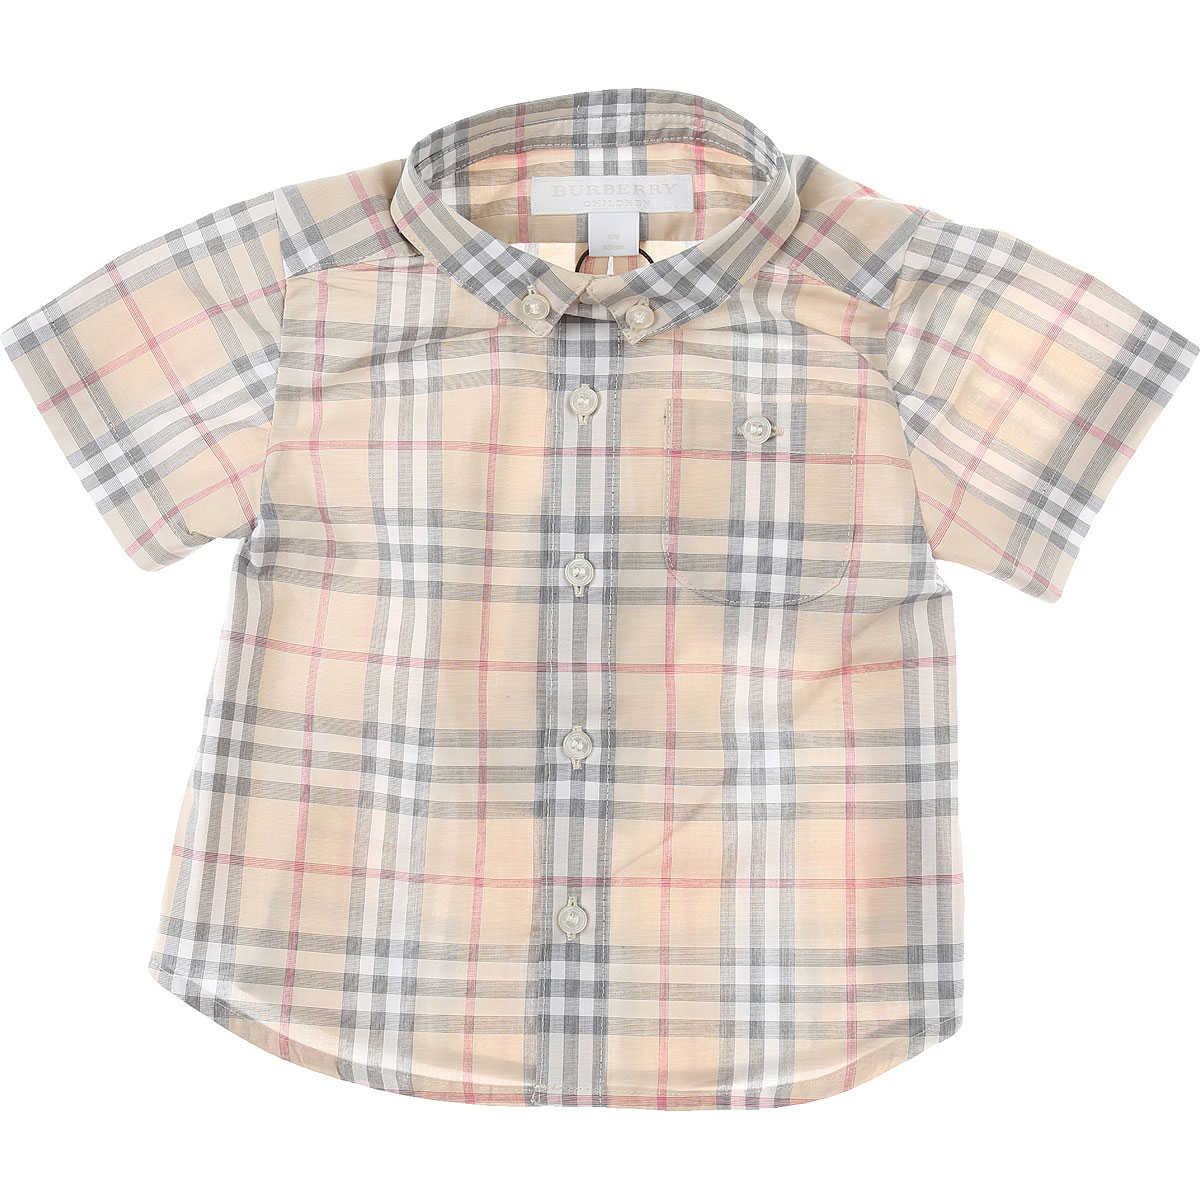 Burberry Baby Shirts for Boys On Sale Beige SE - GOOFASH